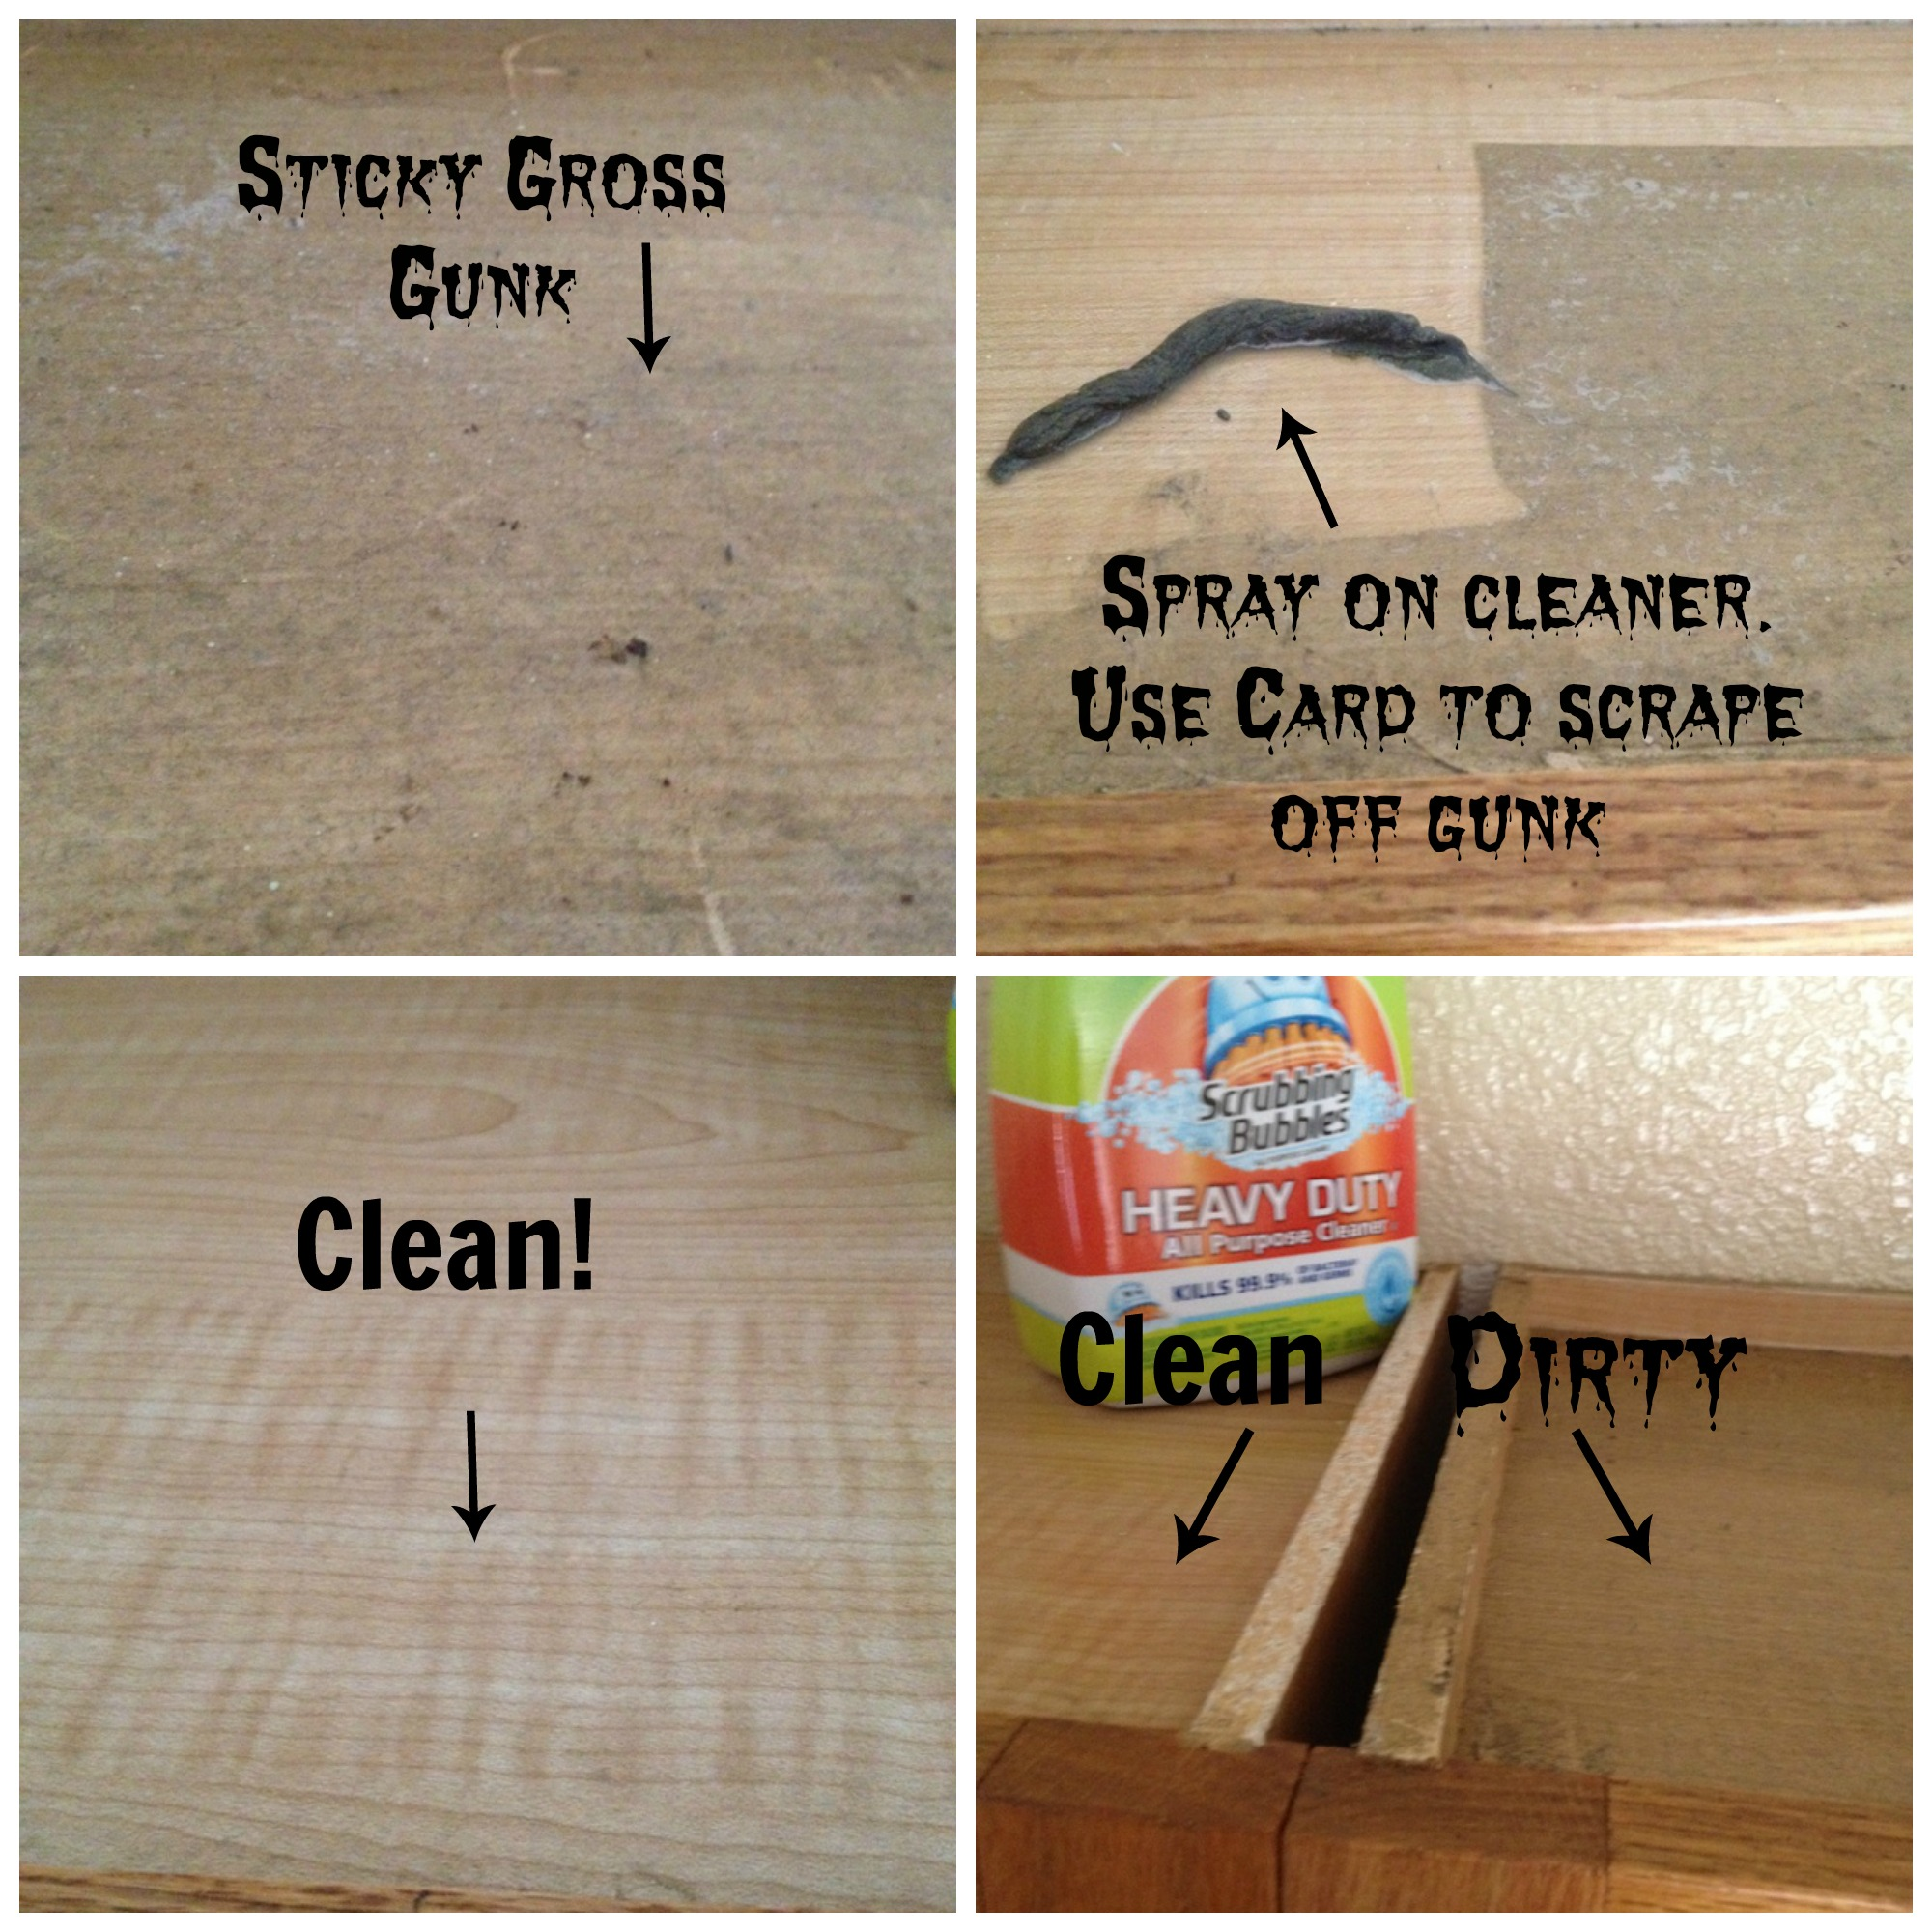 Best Kitchen Gallery: How To Clean The Tops Of Greasy Kitchen Cabi S Secret Tip My of Cleaning Inside Kitchen Cabinets on rachelxblog.com